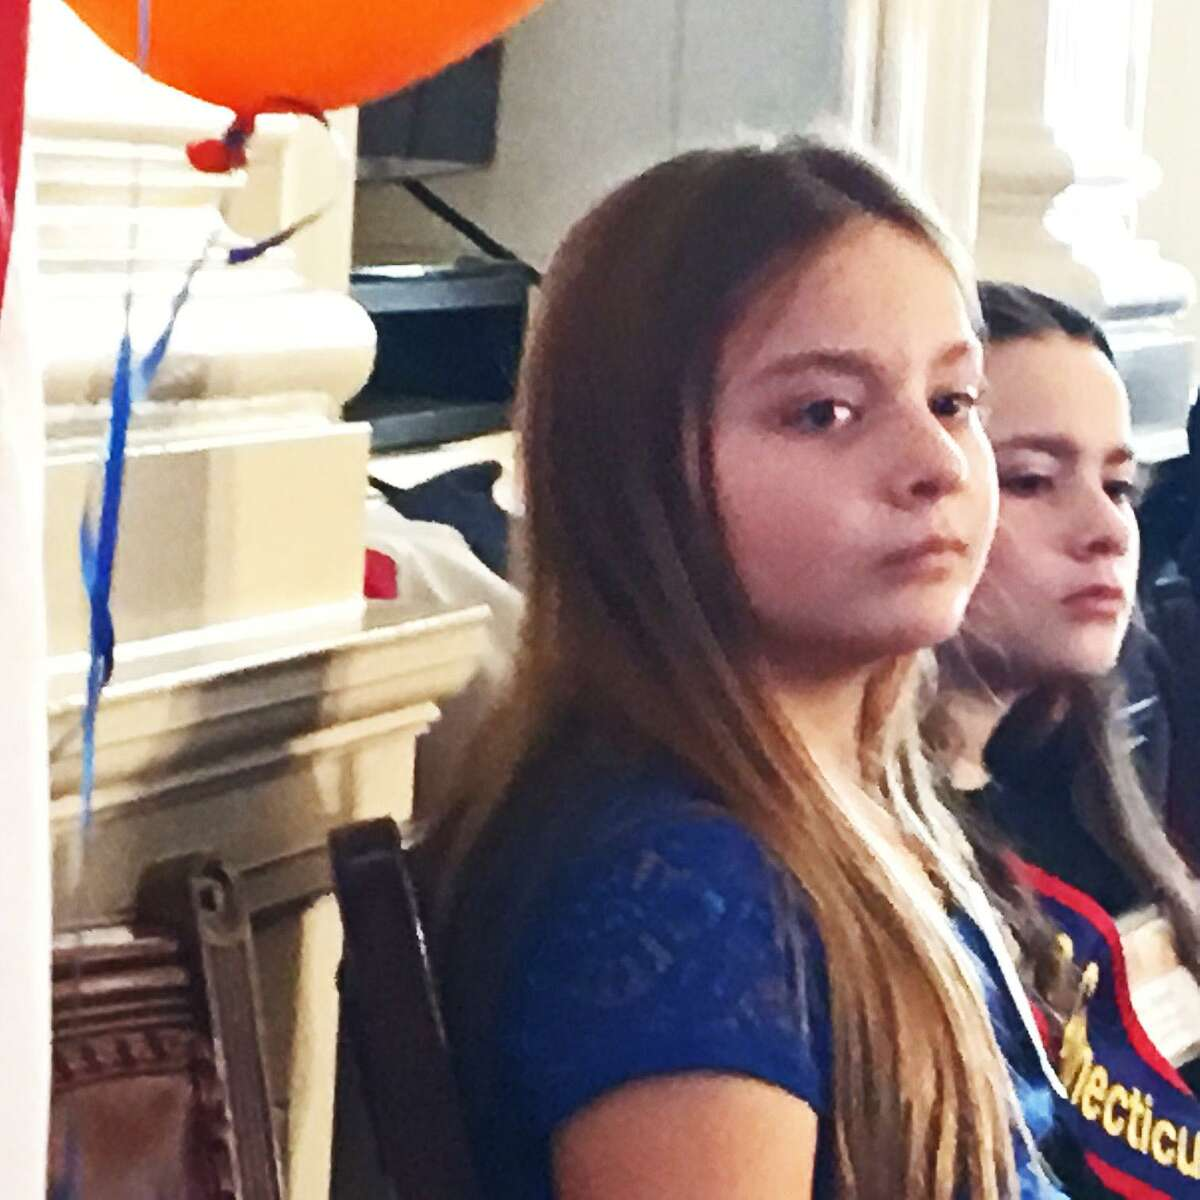 Jessica Brocksom of Milford, Connecticut's new Kid Governor.